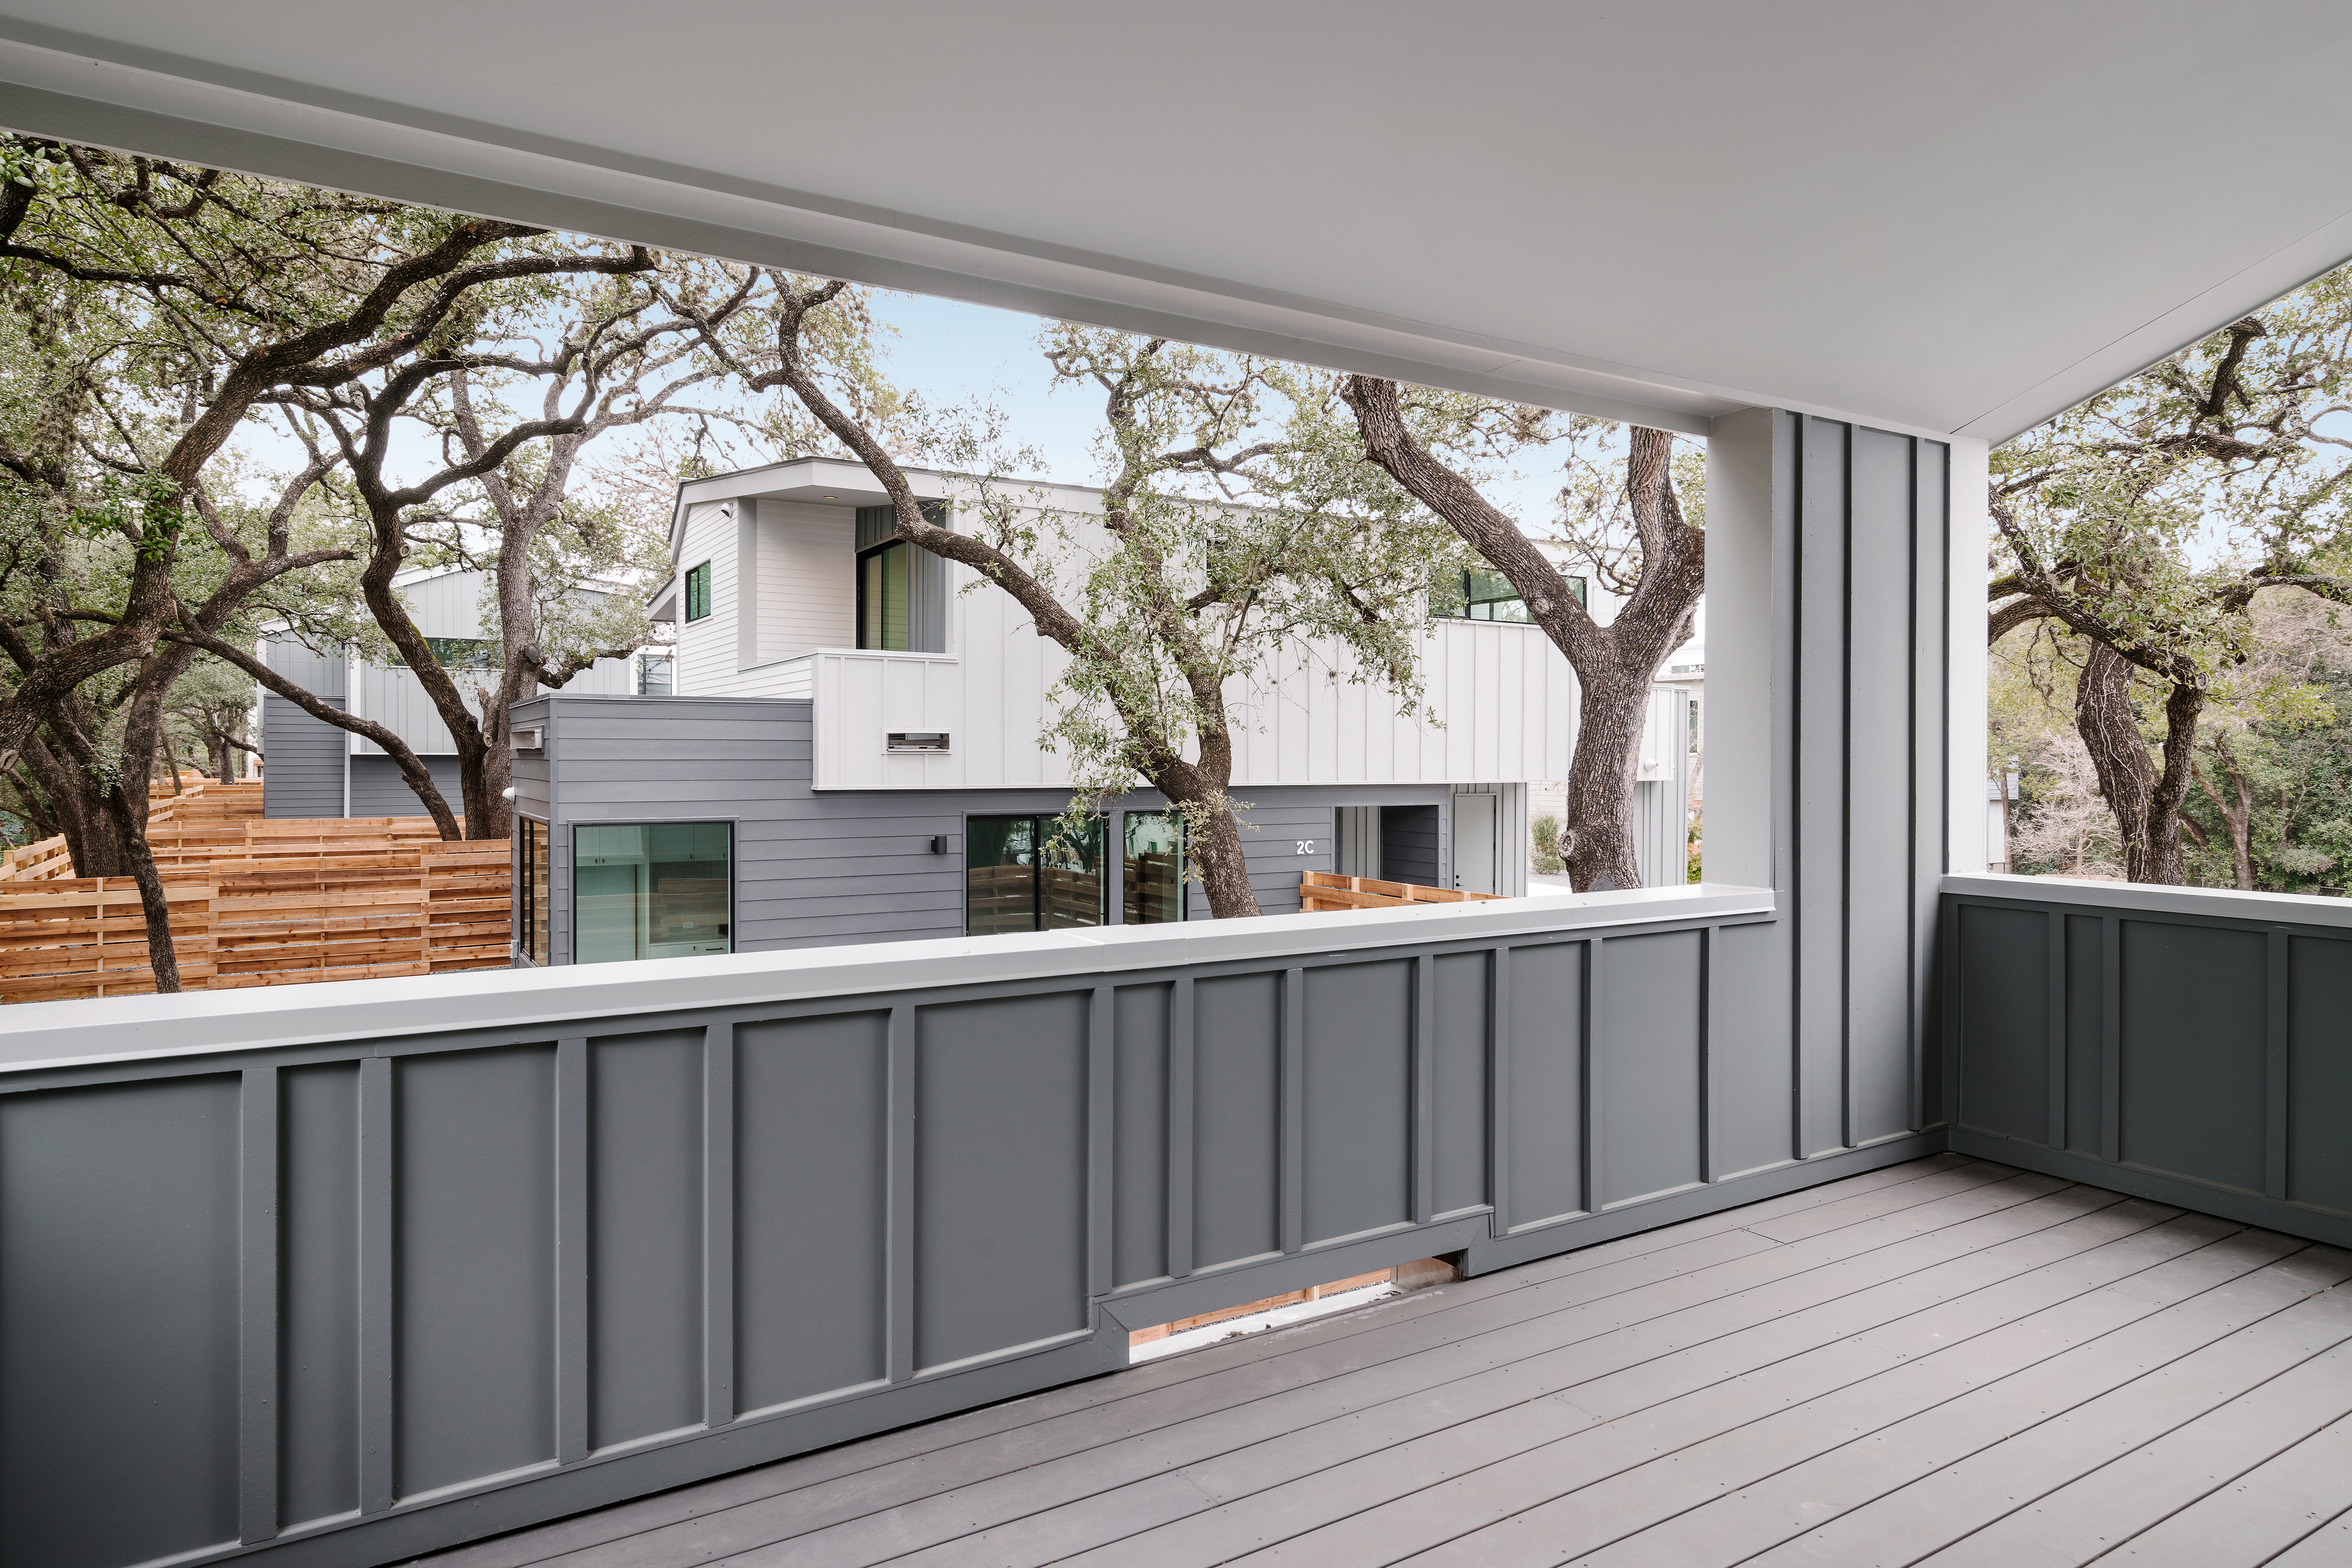 covered modern balcony looking out on trees and a nearby home by same architect